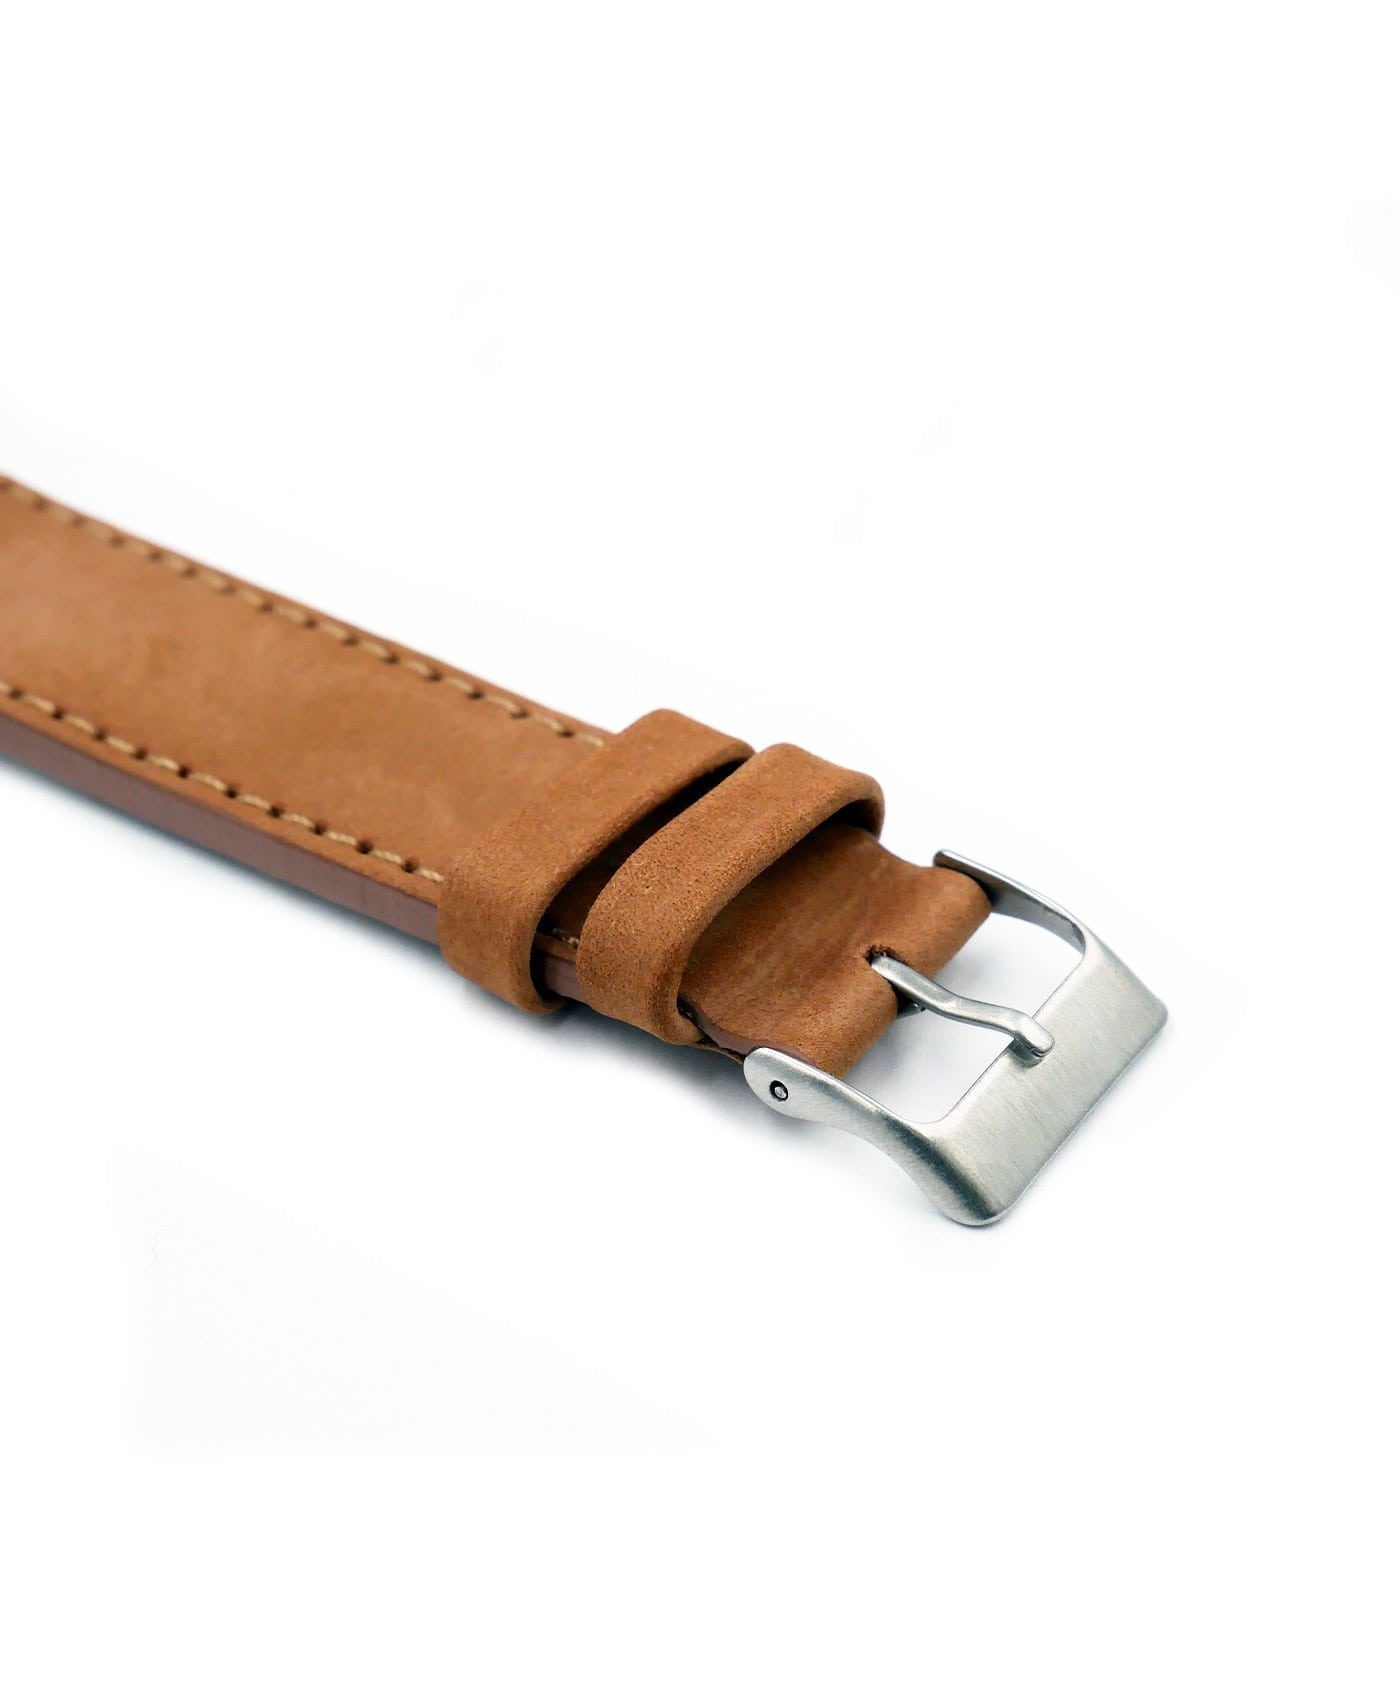 Pebro Premium Calfskin Watch Strap Terracotta Tanned No 190 buckle close up